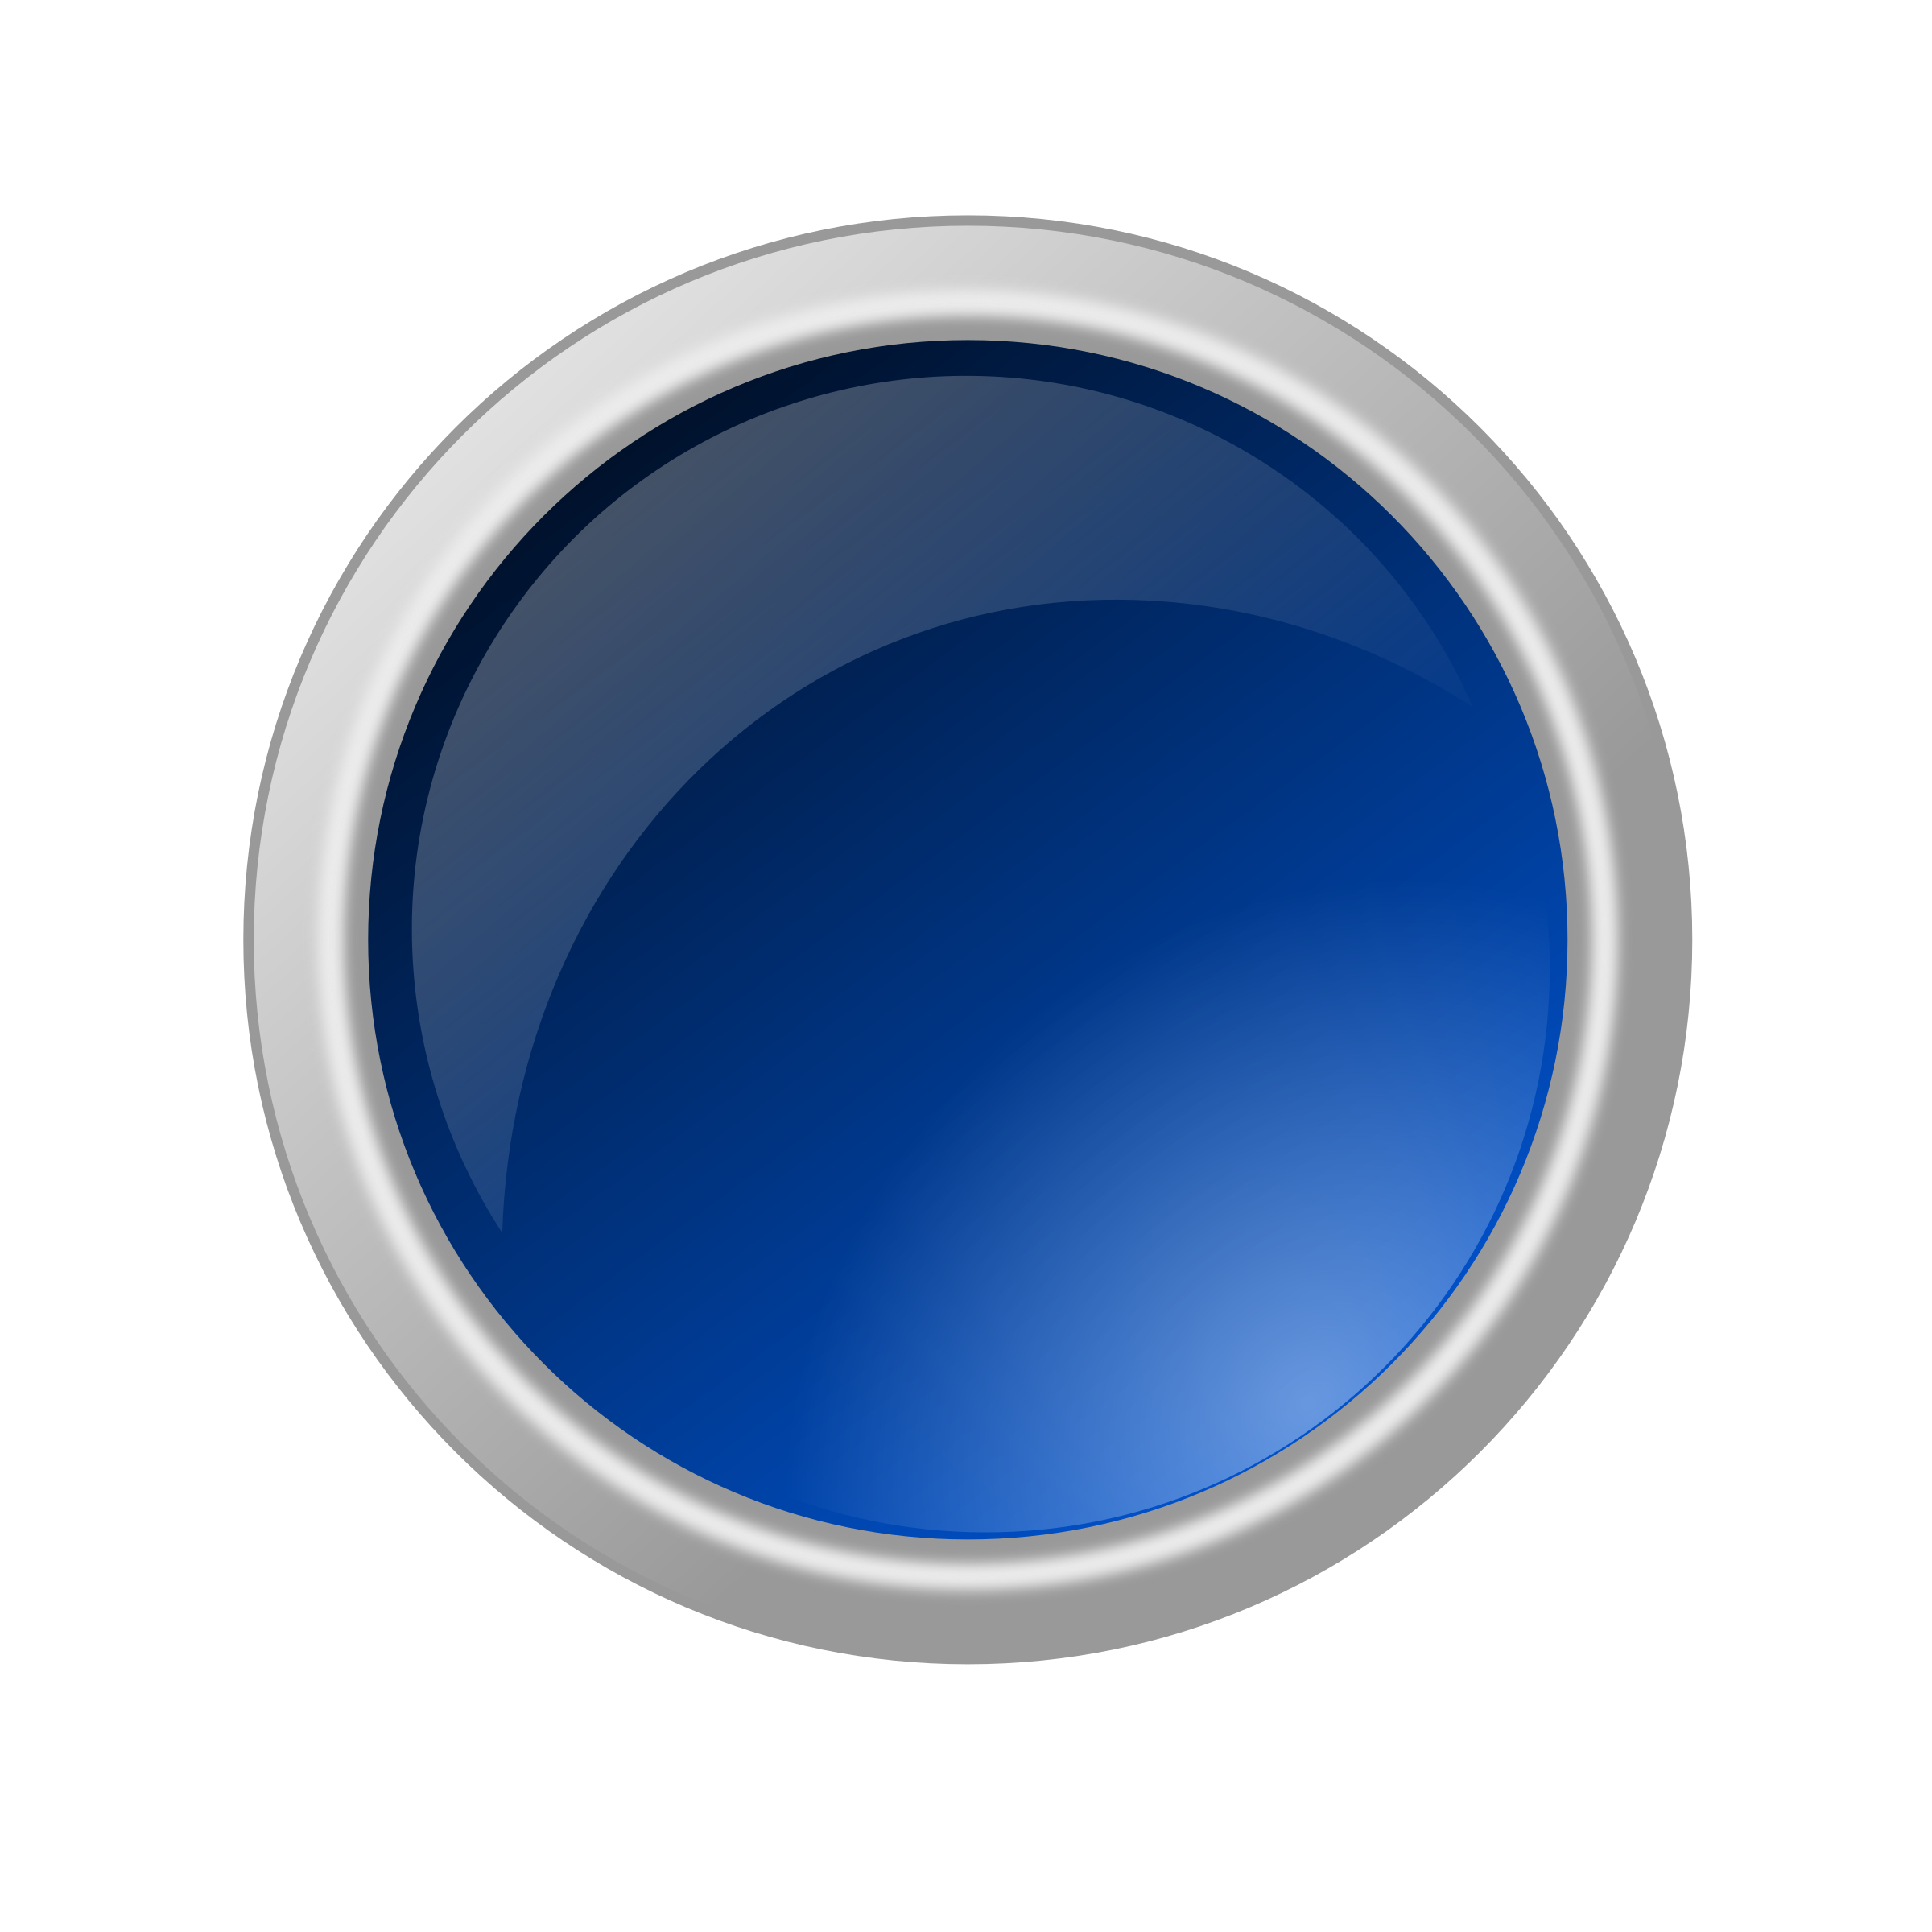 glossy blue button by ricardomaia